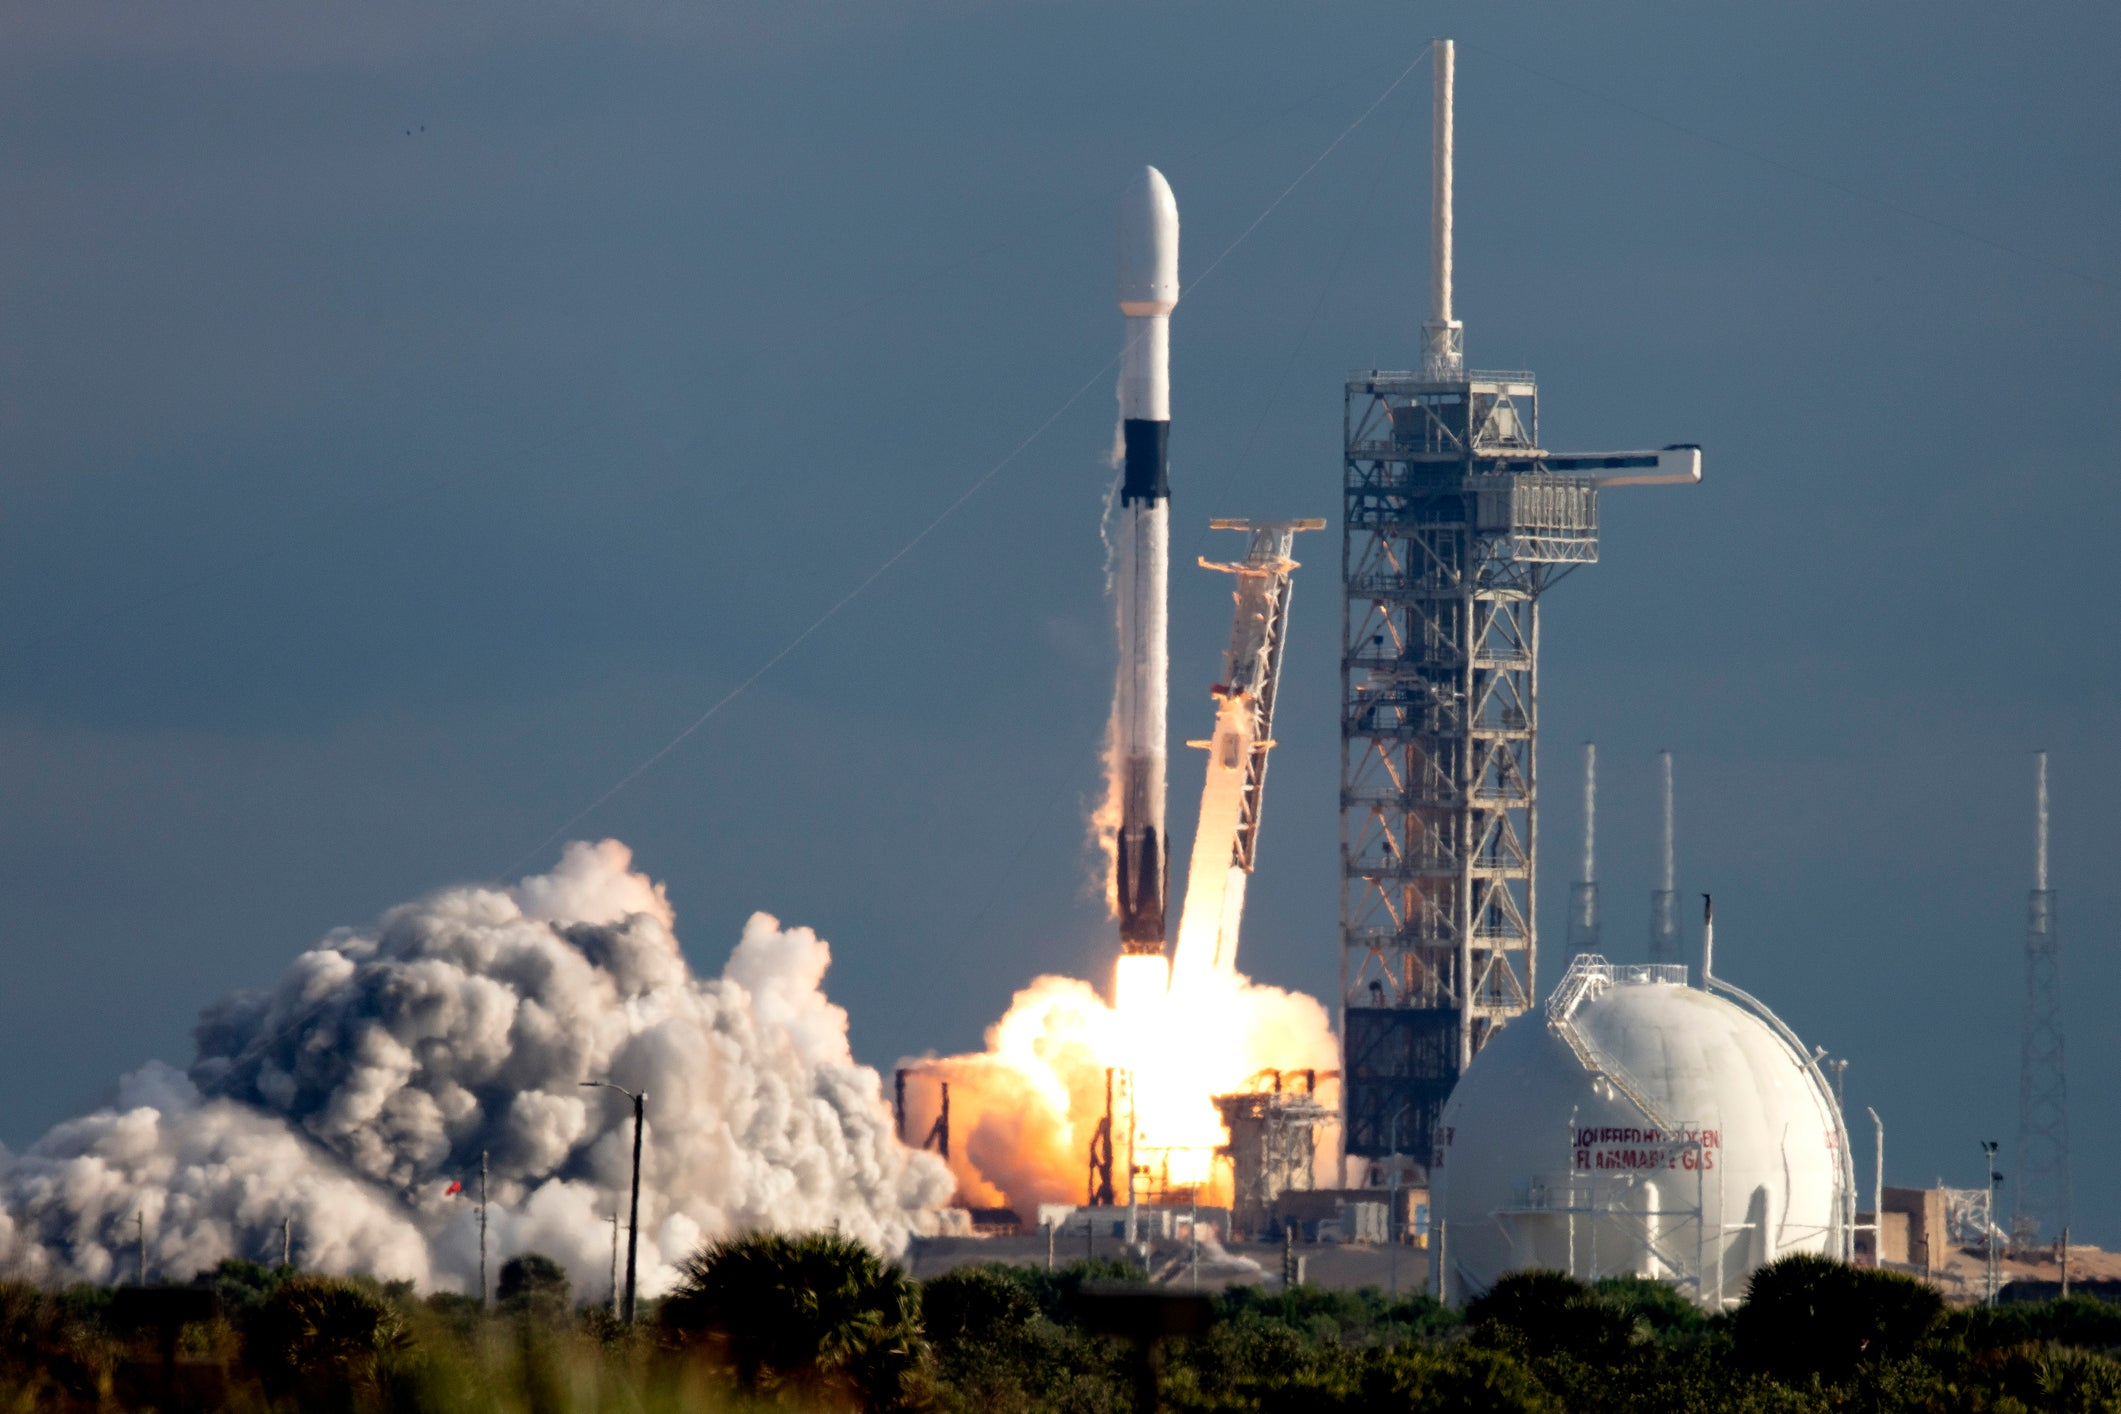 5 Things to Know About SpaceX's Falcon 9 Rocket